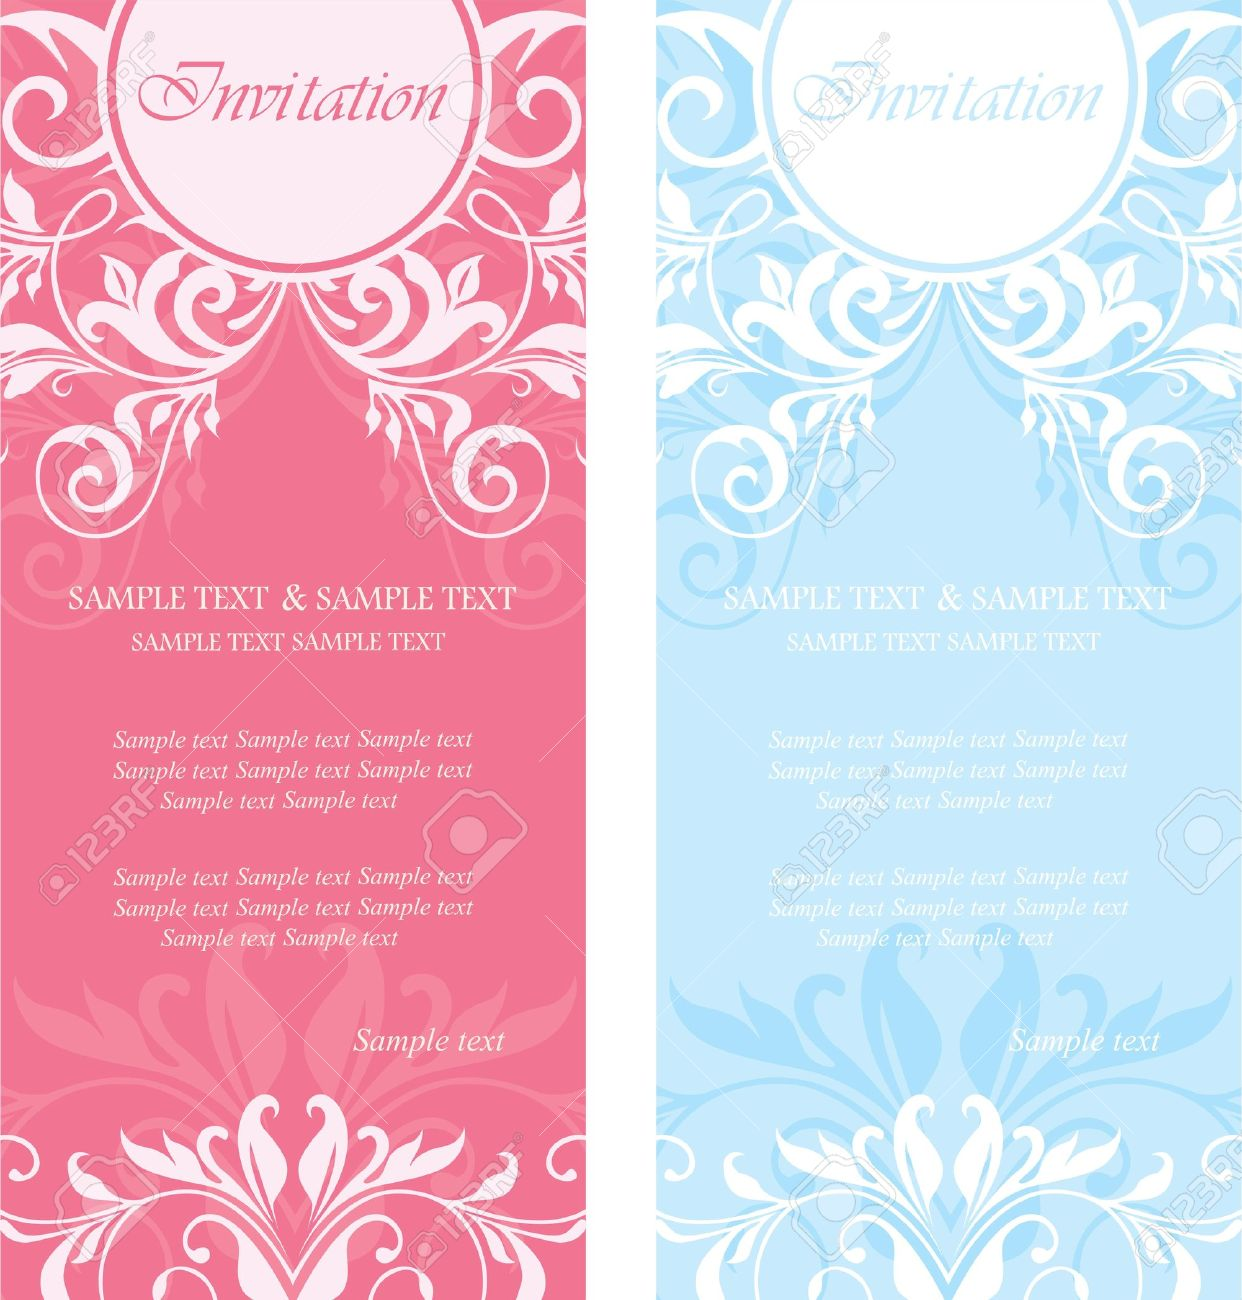 New wedding invitations for you: Wedding invitations with picture ...